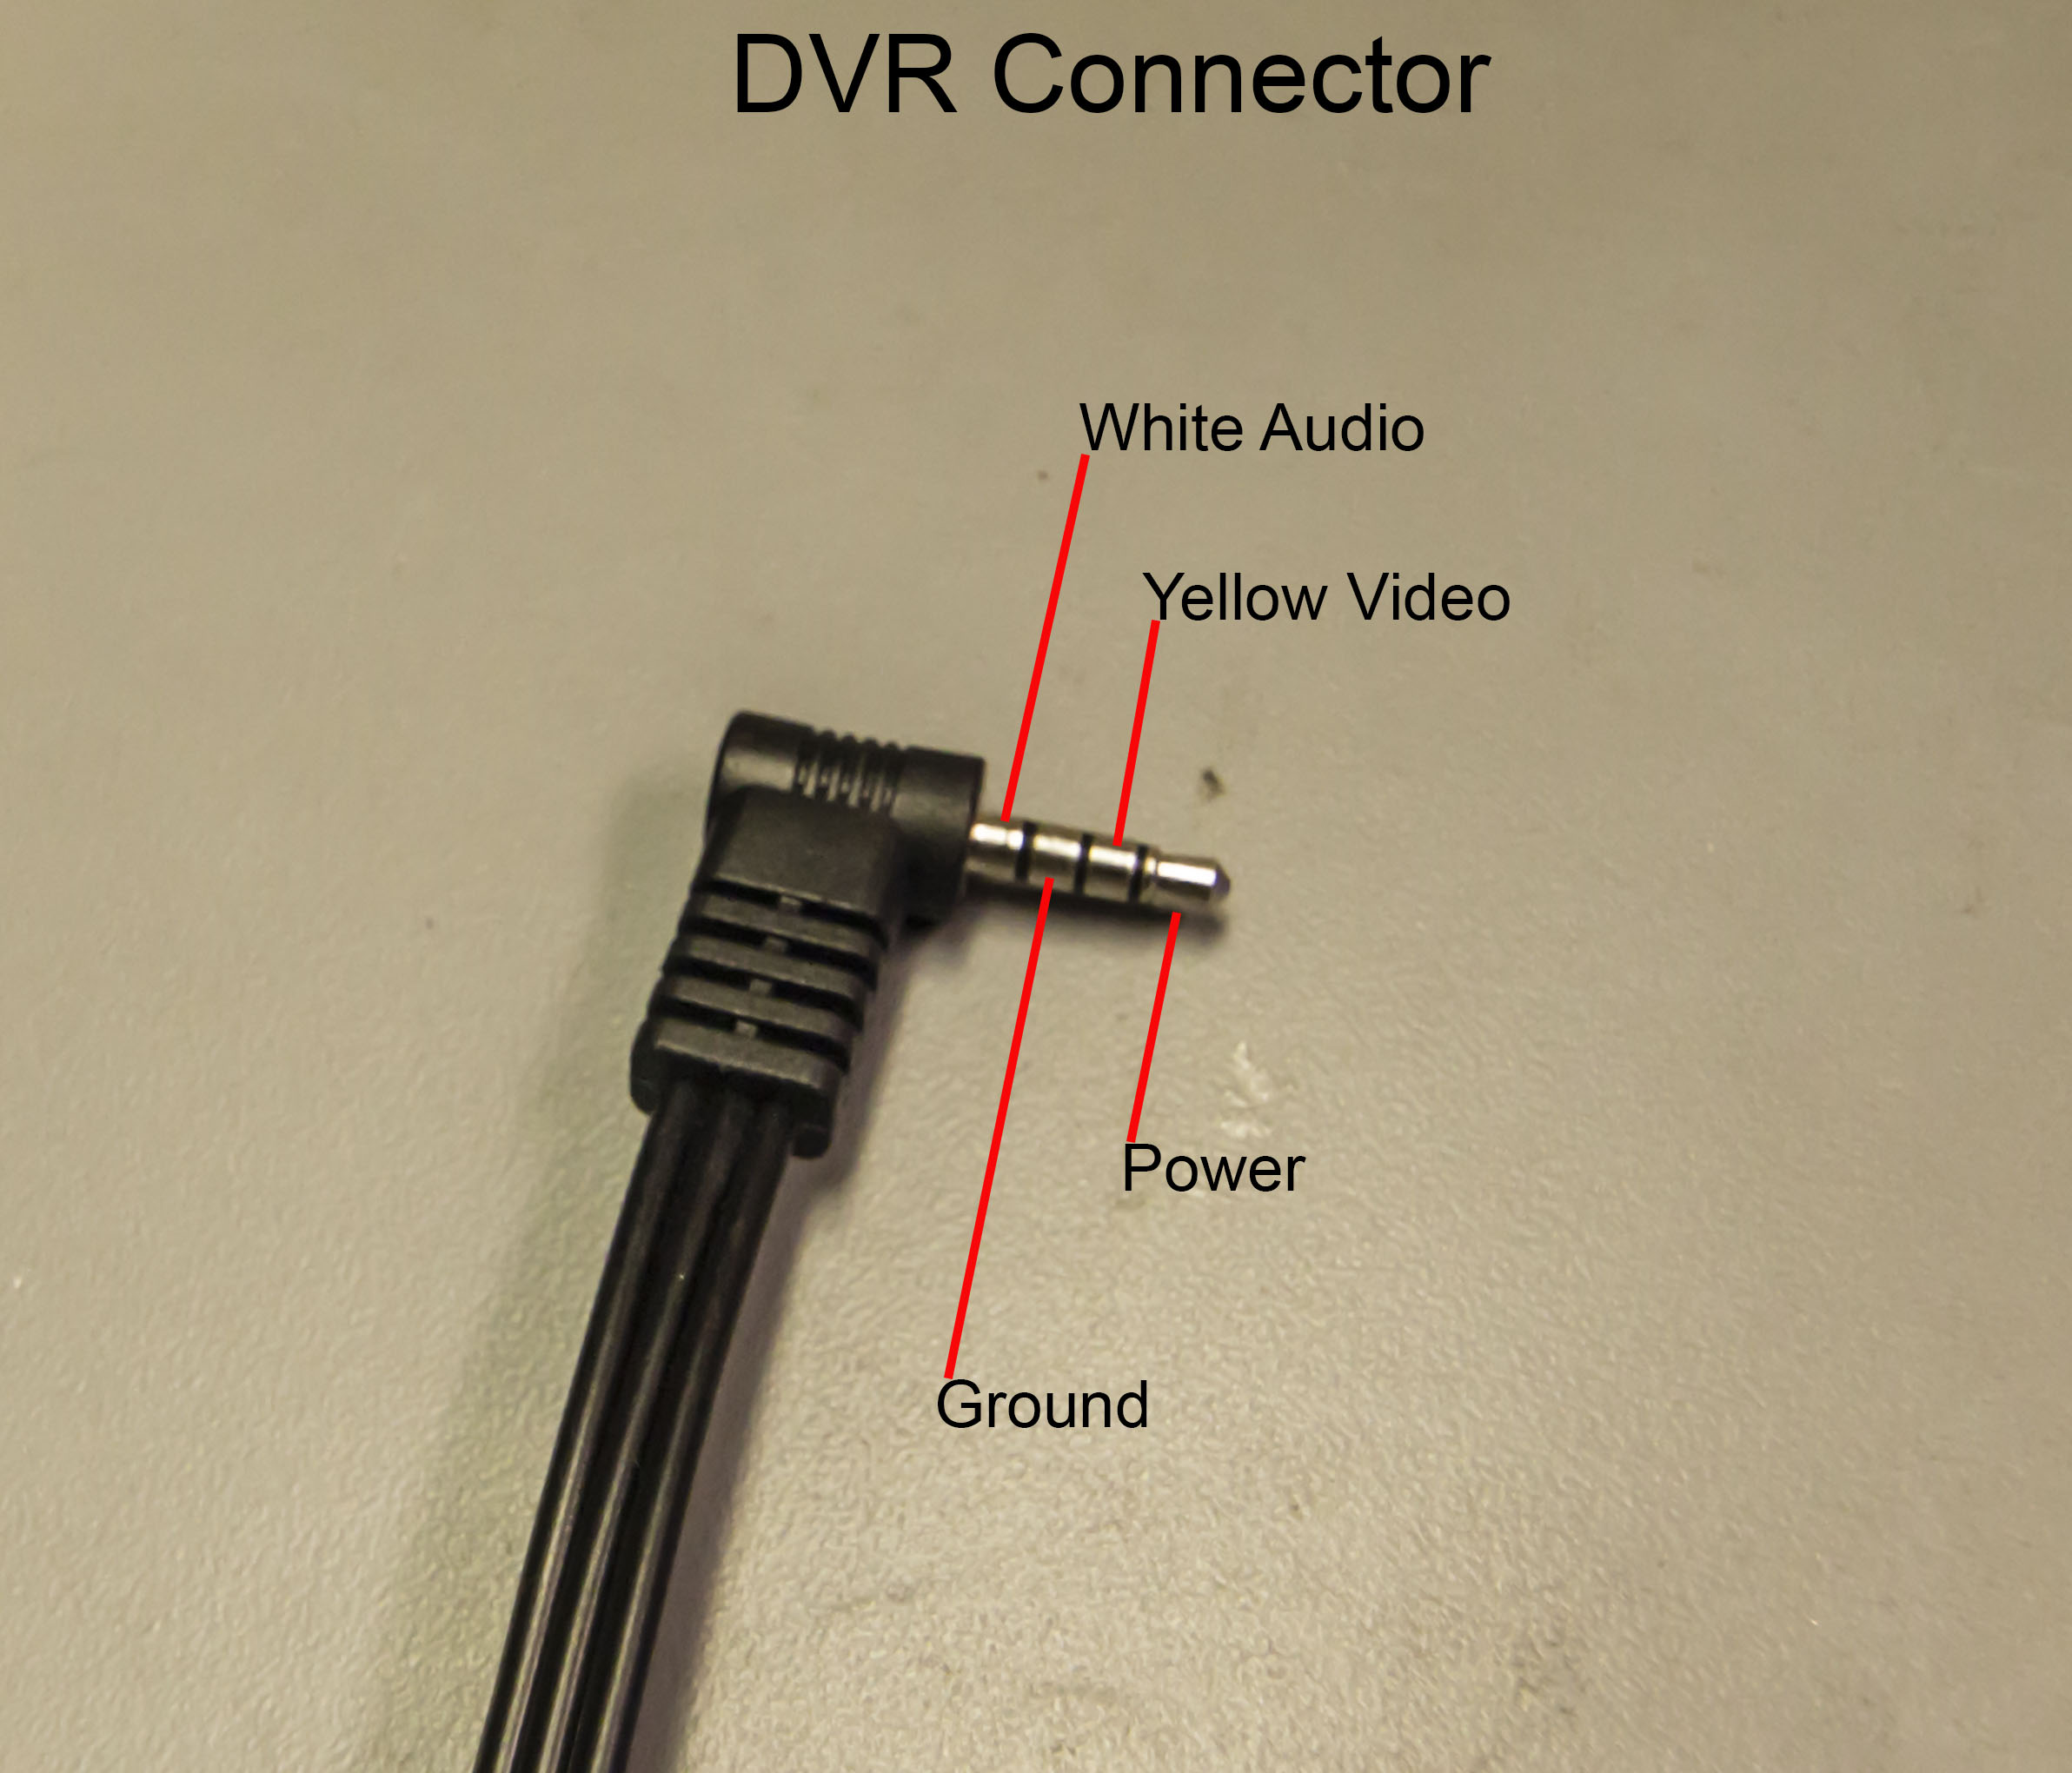 DVR Connector.jpg